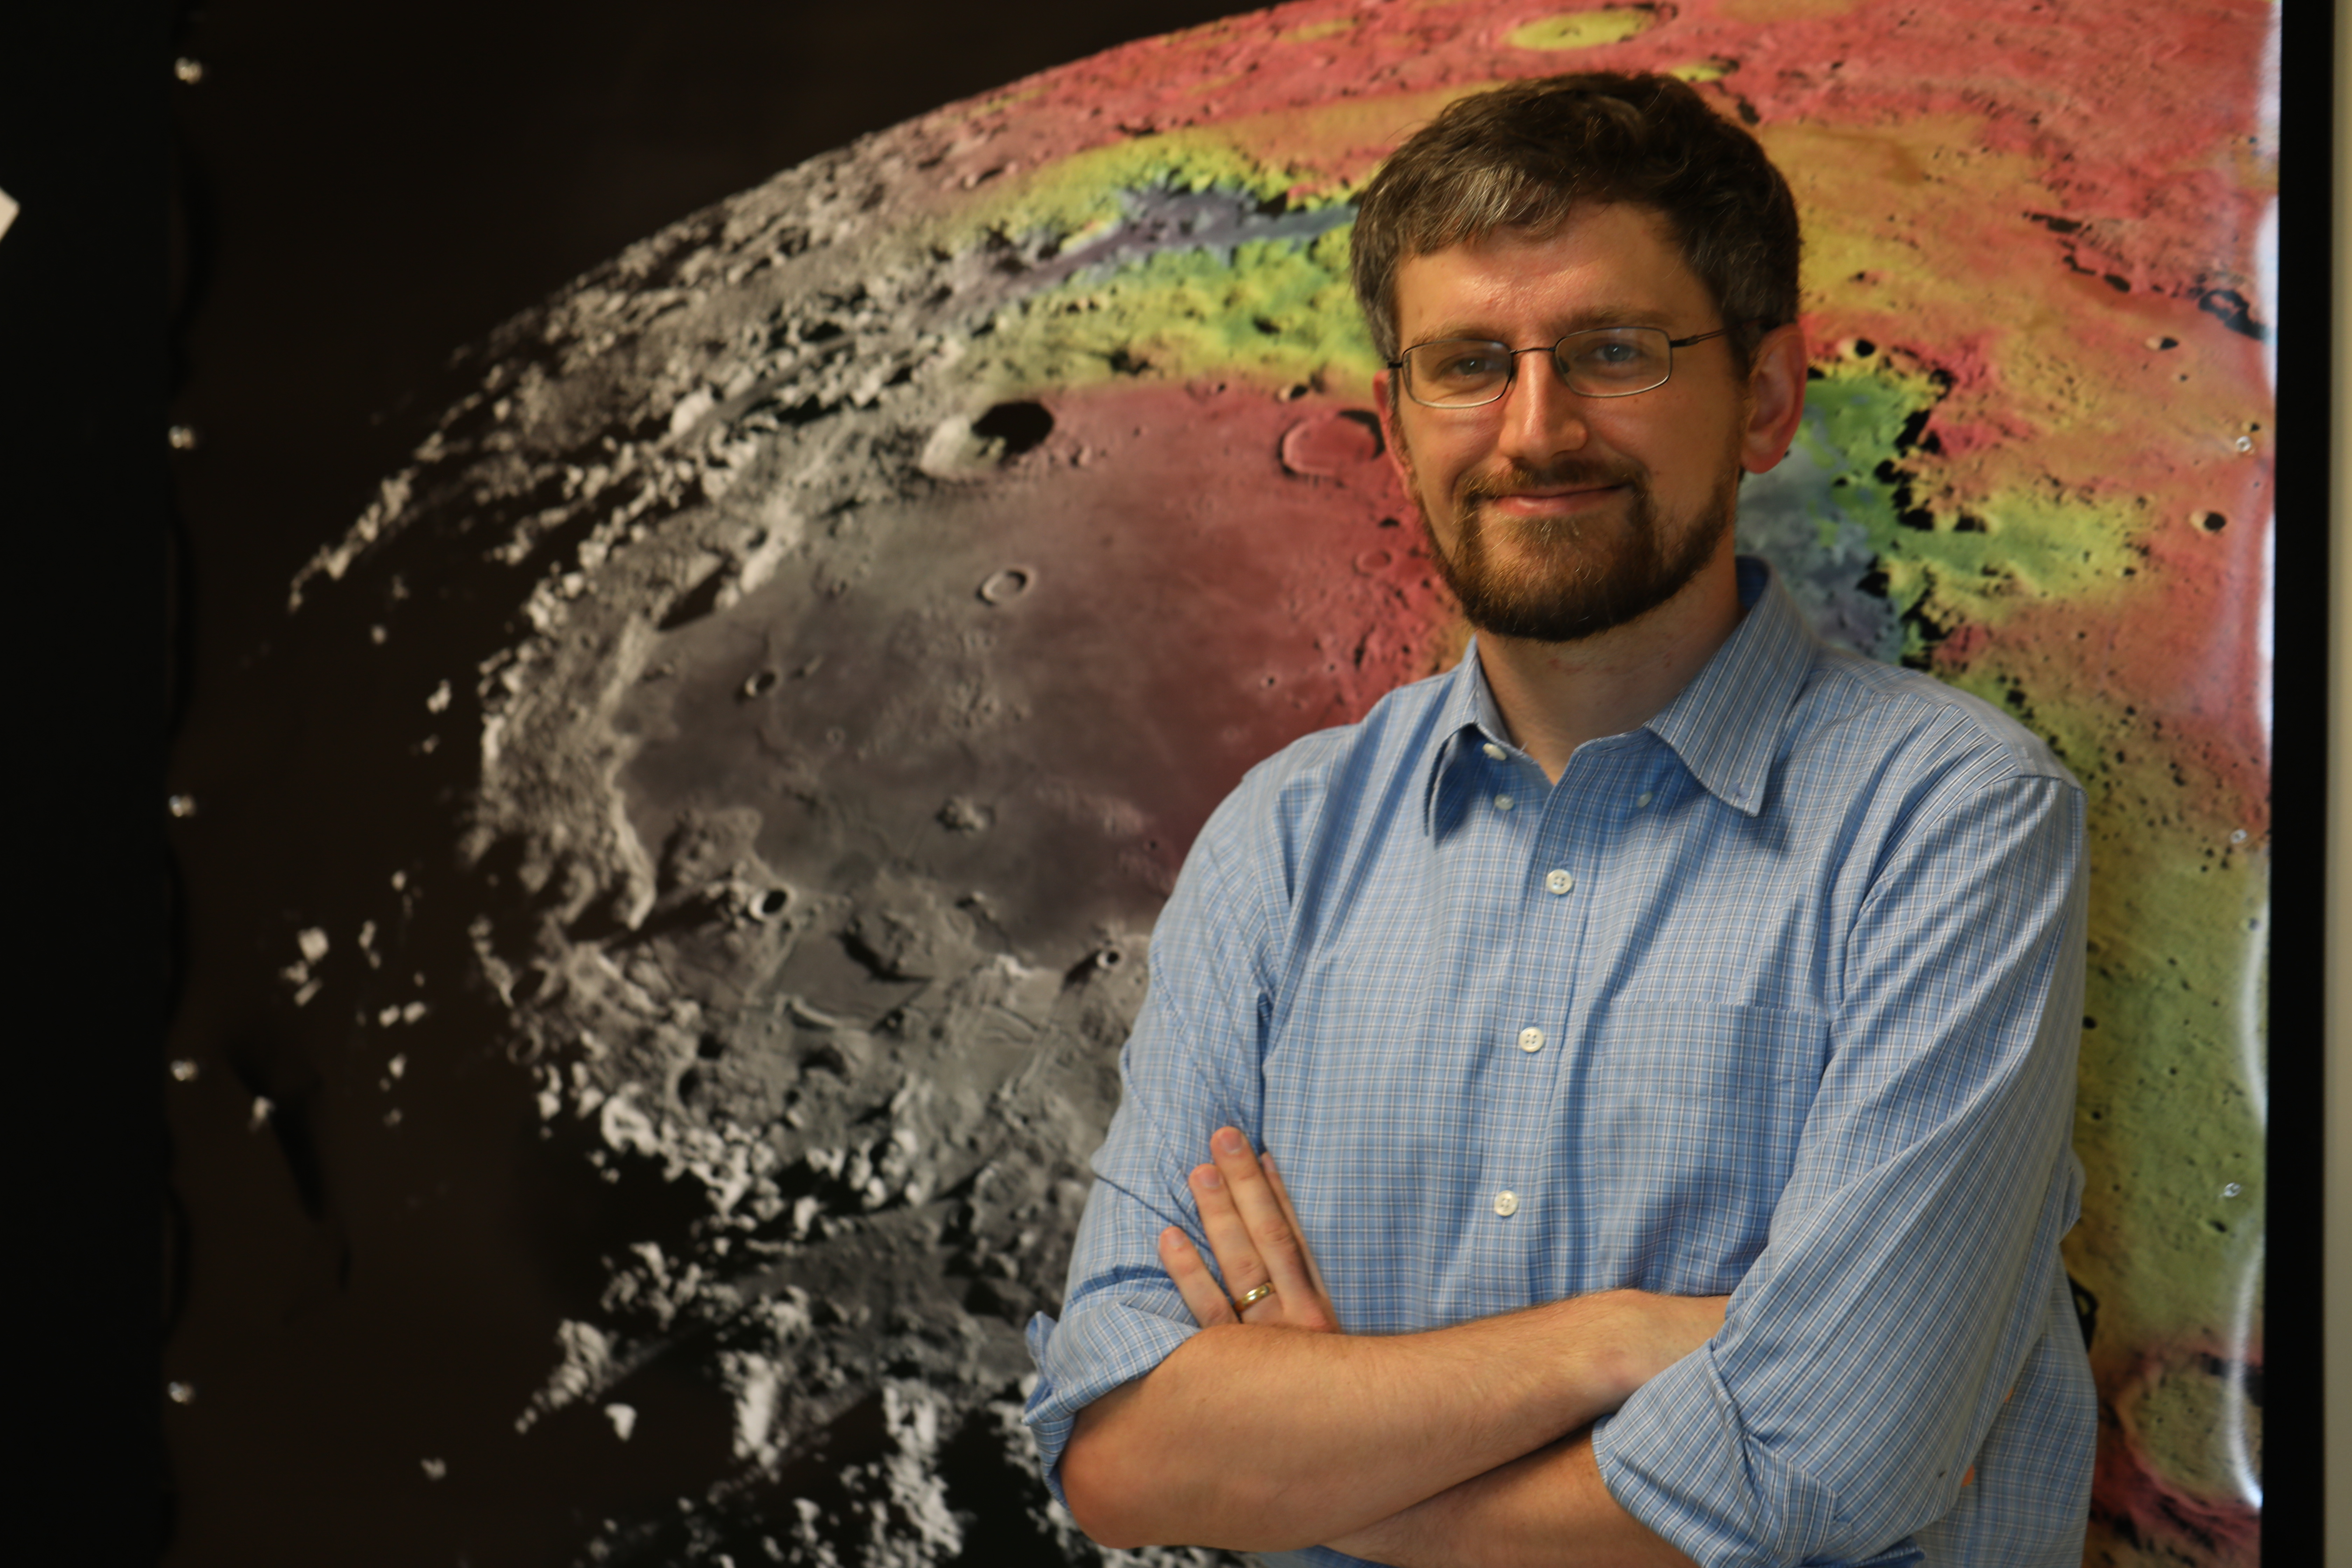 Out-of-This-World Research: Moon Investigator Sets His Sights on Mercury